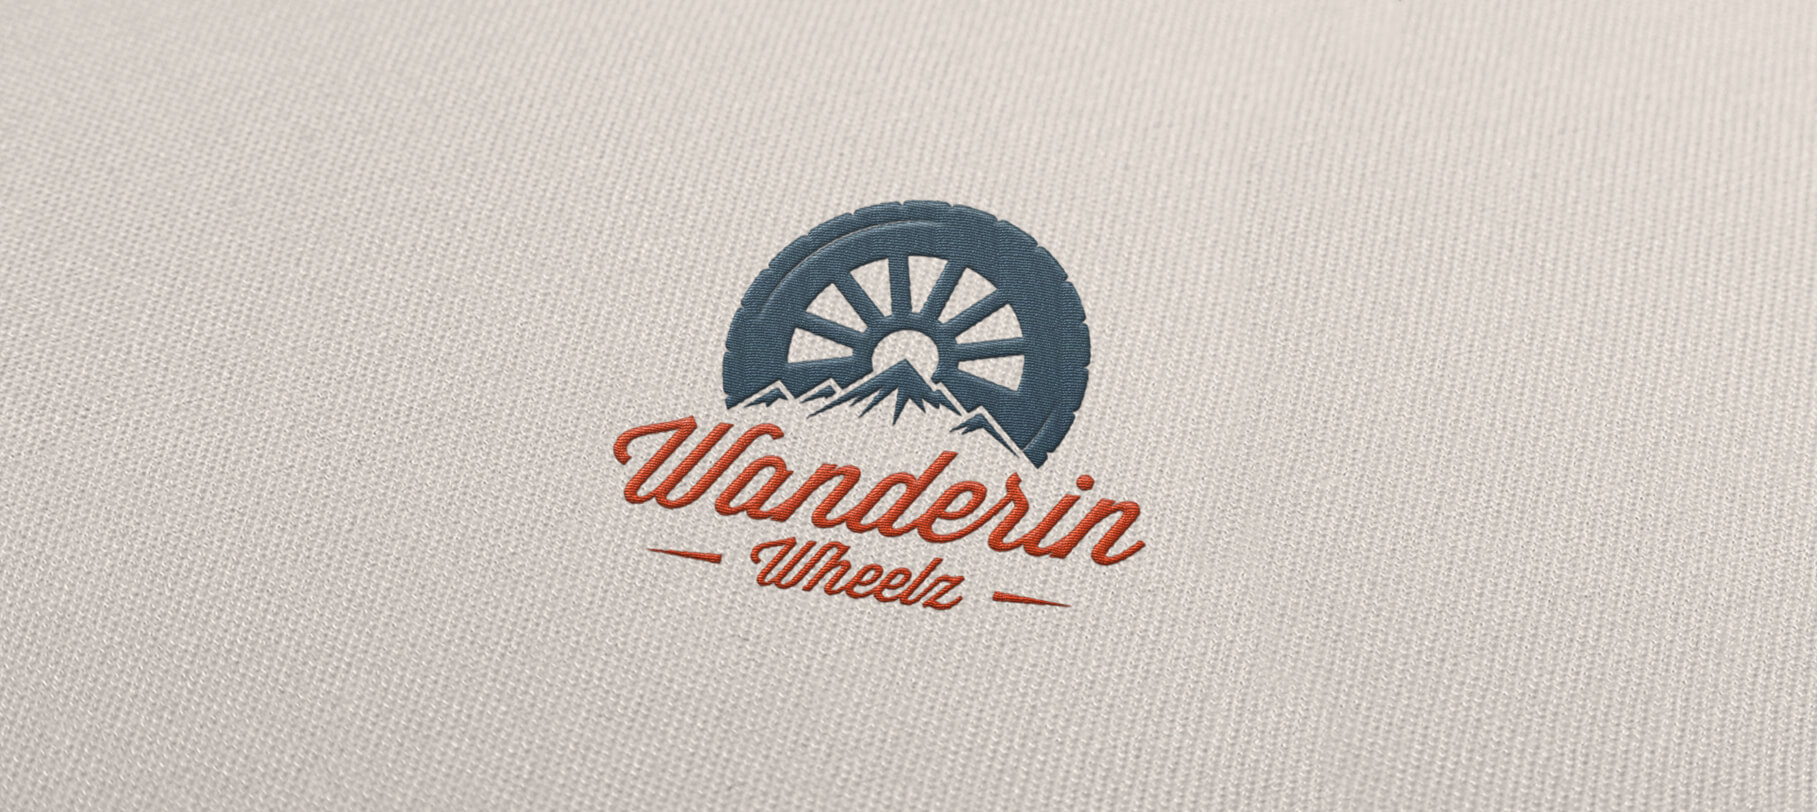 Wanderin Wheels Embroidered